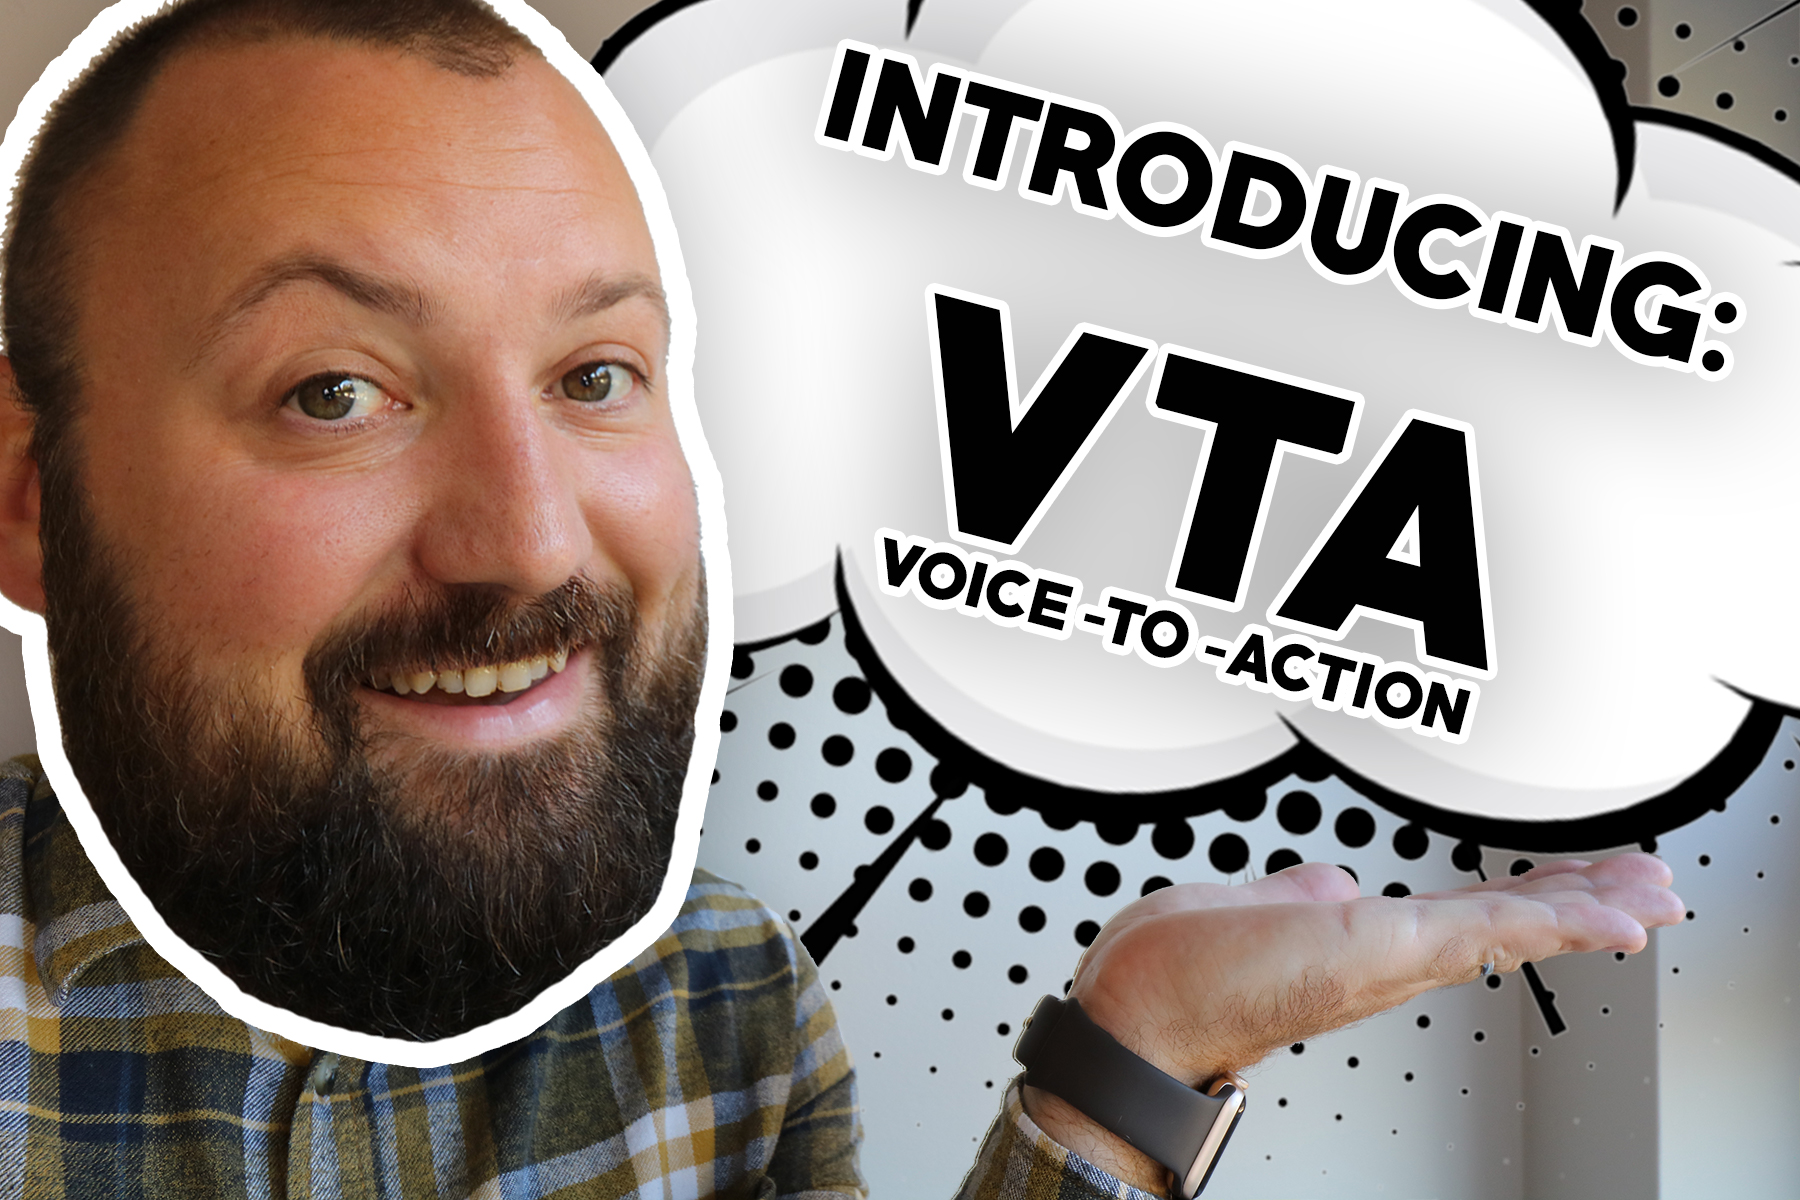 Introducing voice to action website hero image